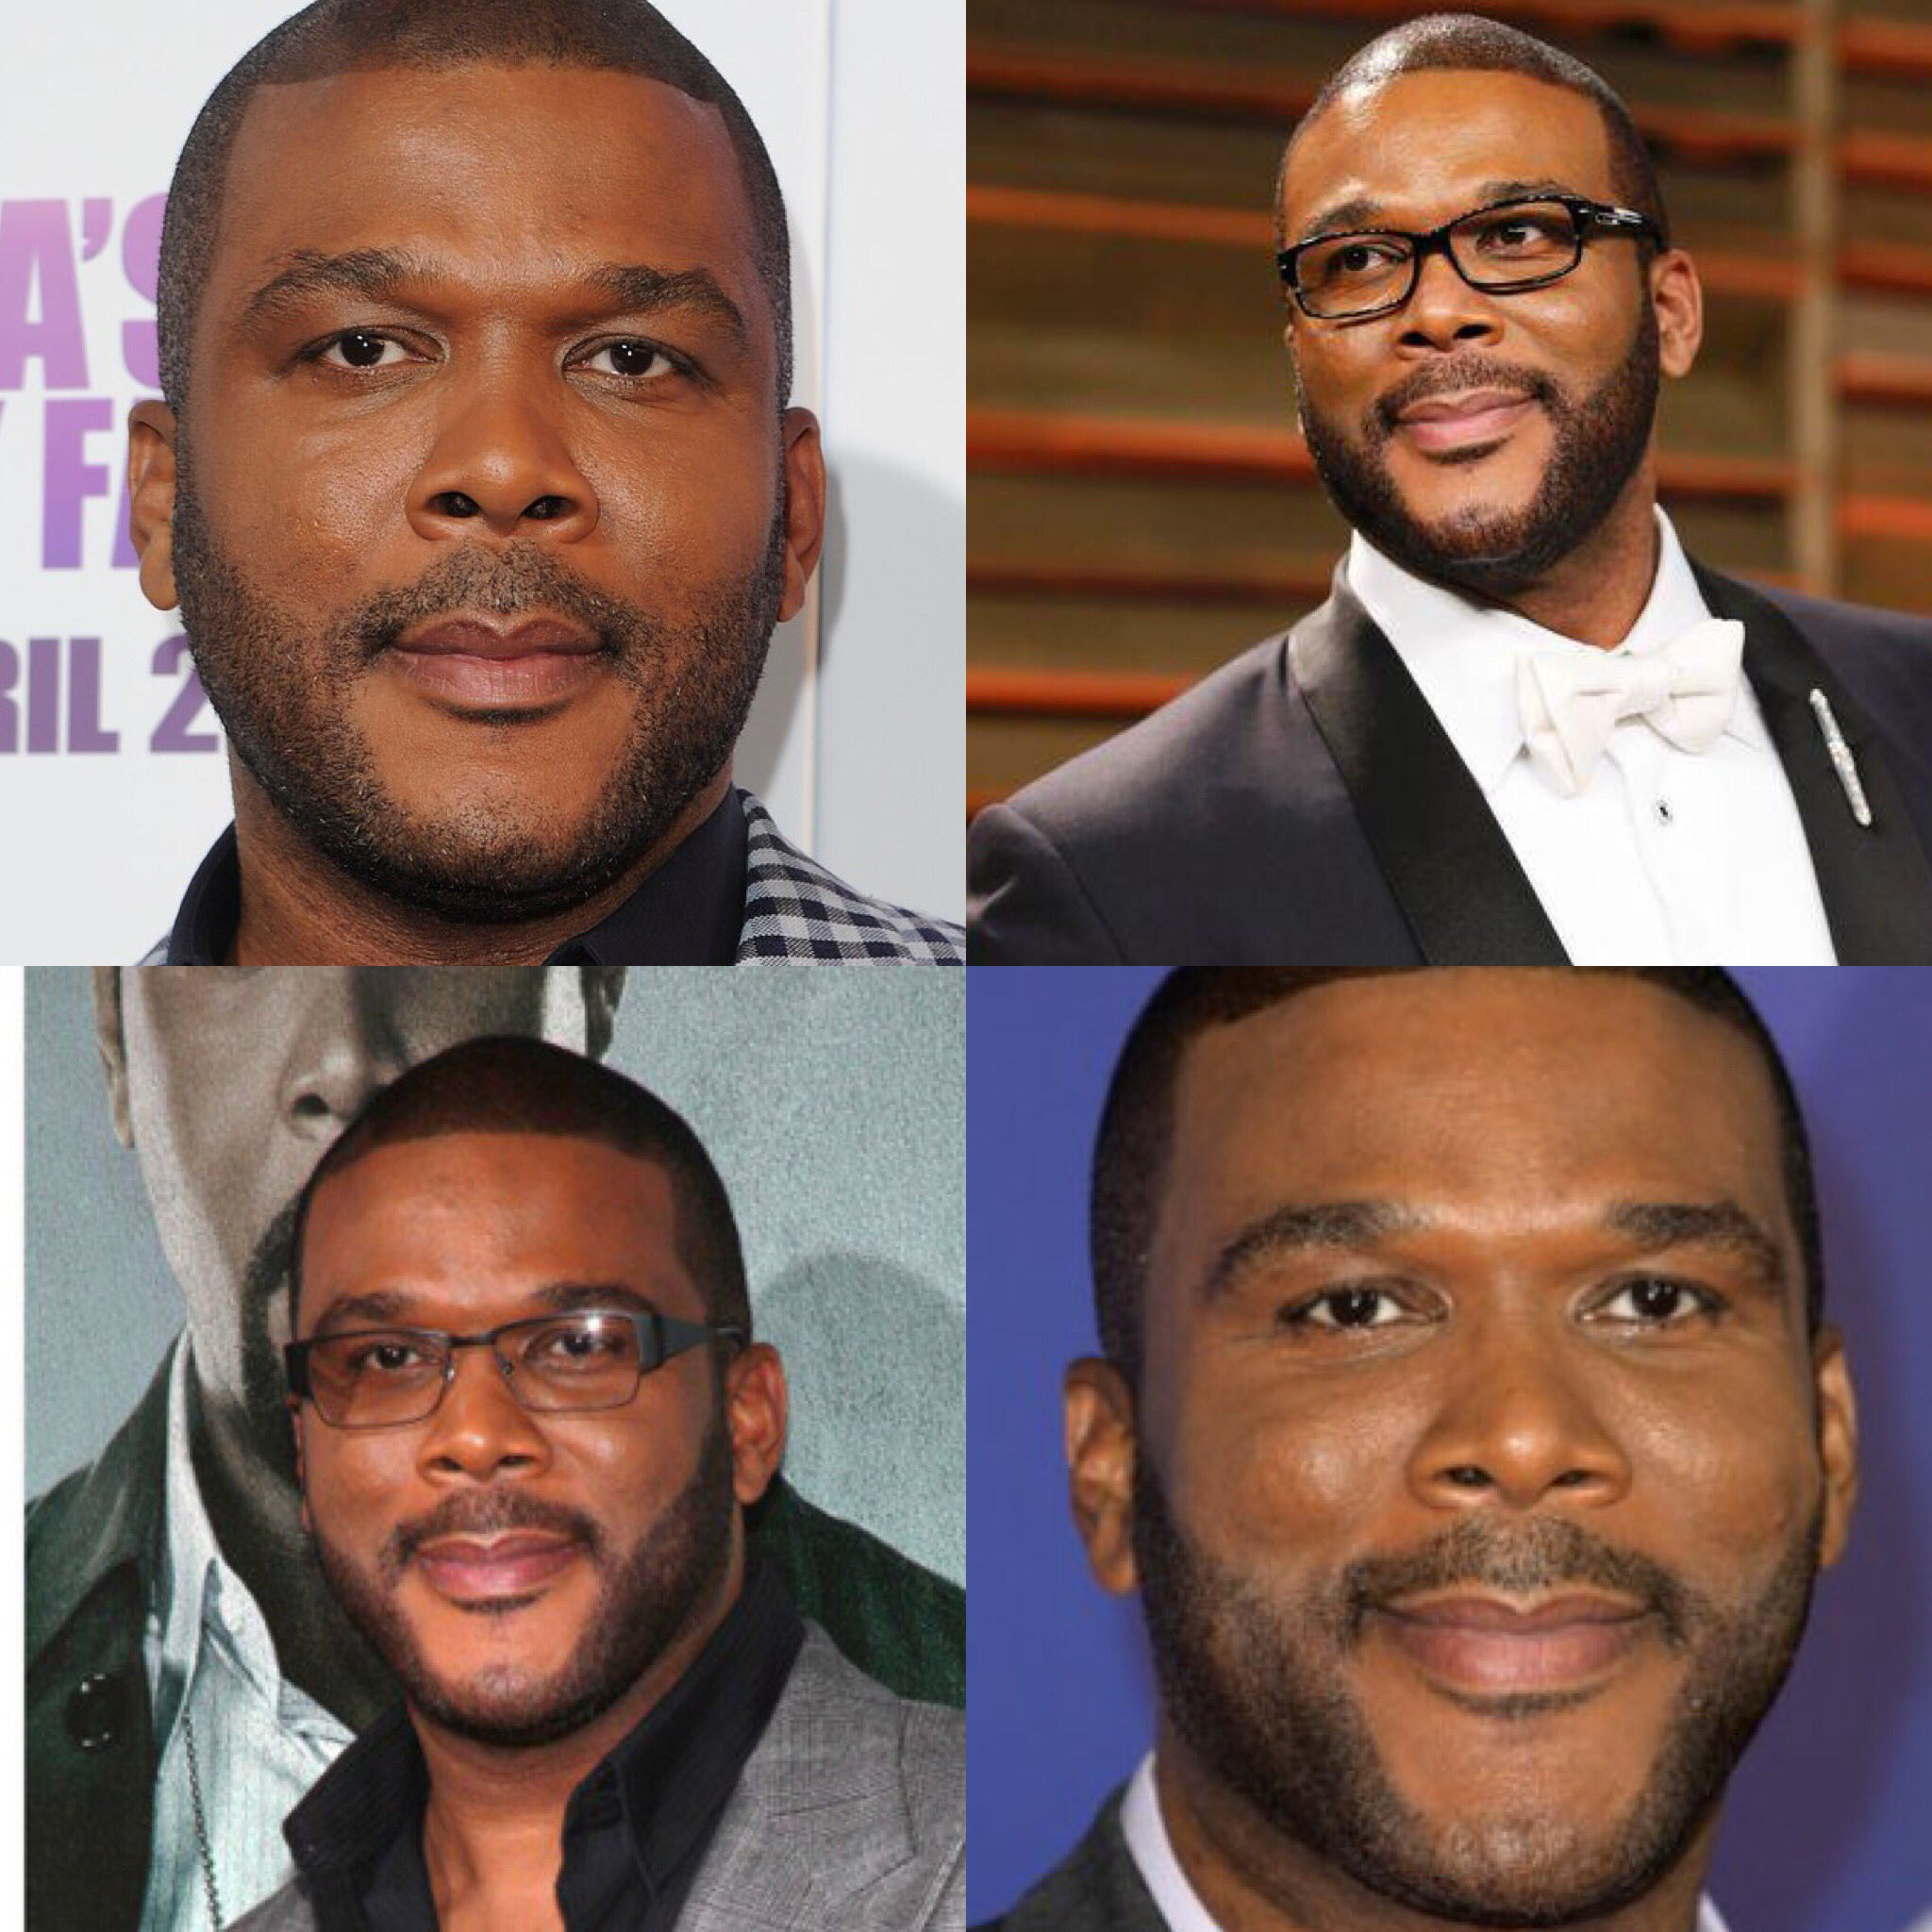 Happy 48 birthday to Tyler Perry.hope that he has a wonderful birthday.